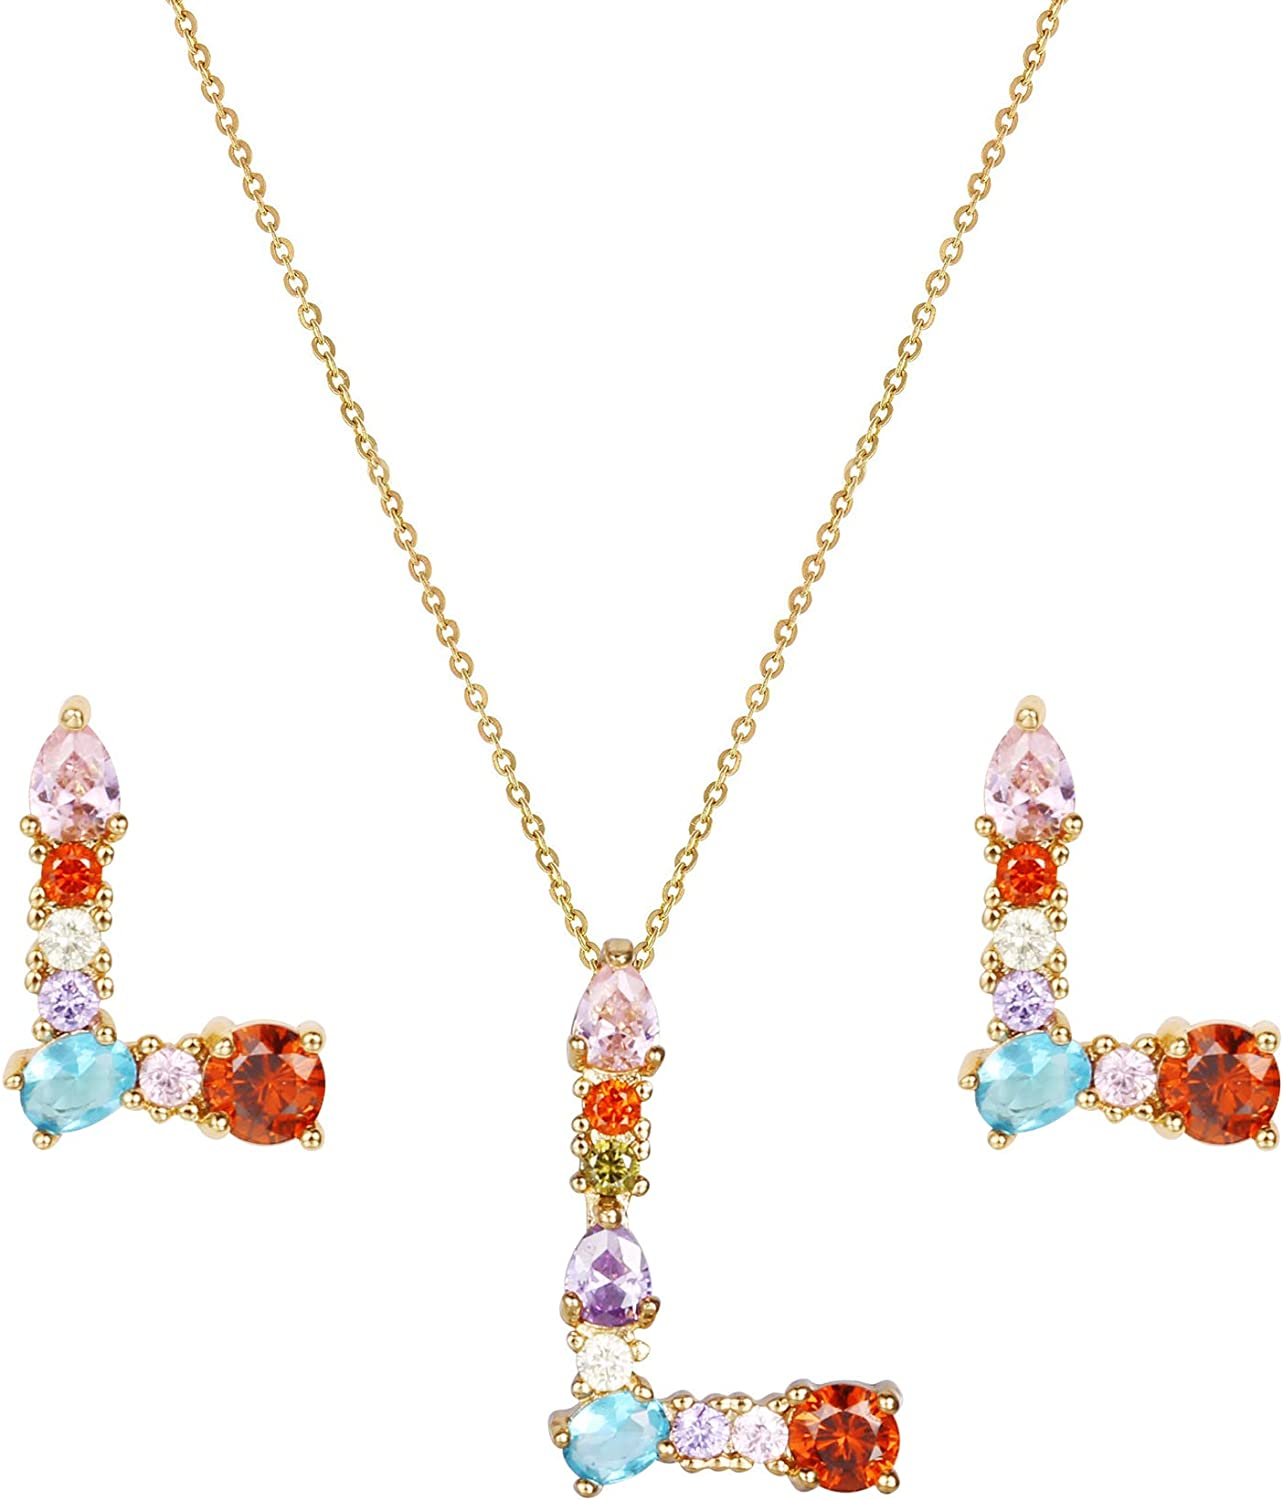 KISSPAT Initial Letter Pendant Necklace and Earrings Set for Women Girls |CZ Jewelry Gifts